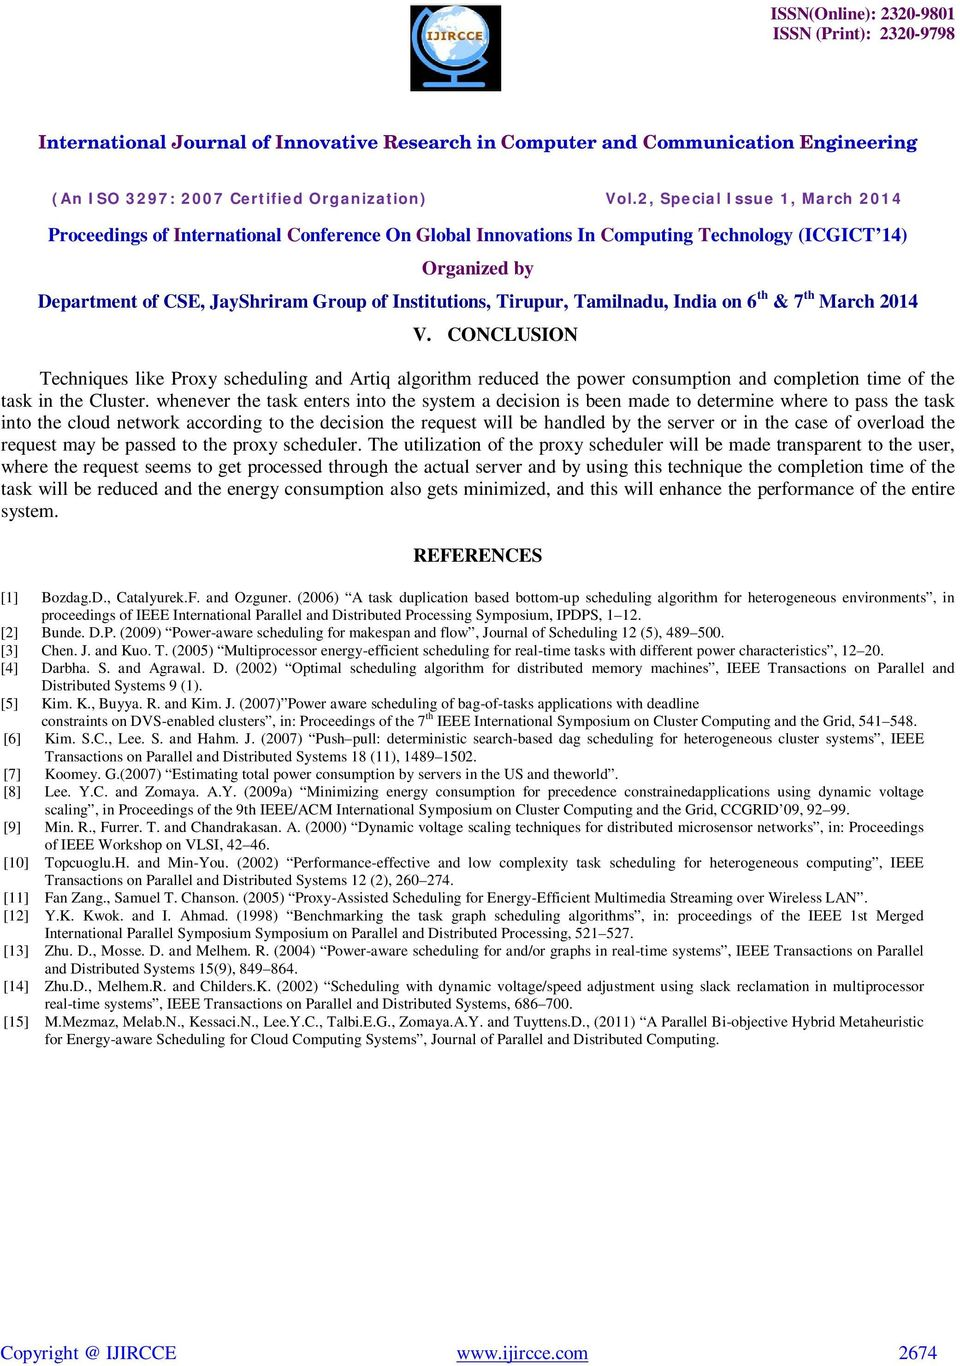 the case of overload the request may be passed to the proxy scheduler.